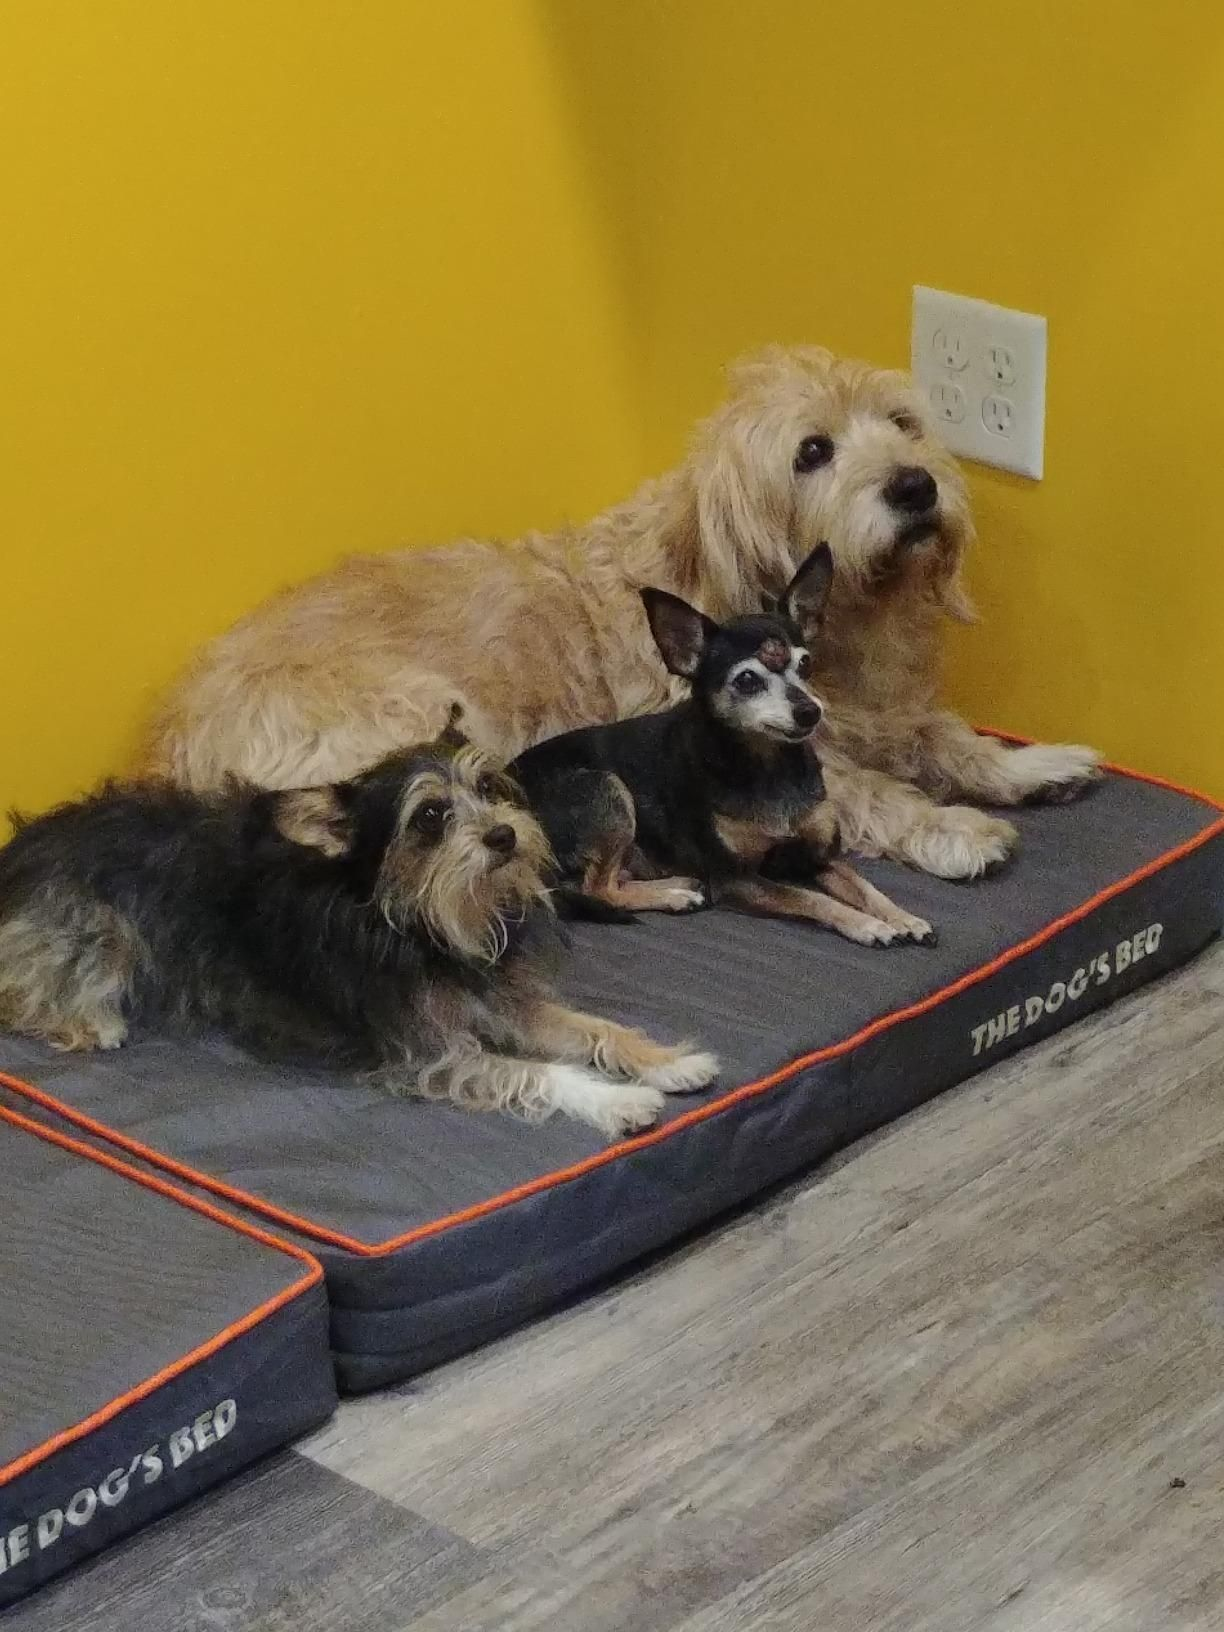 Pillow can relieve your pet's aches and pains. It is great